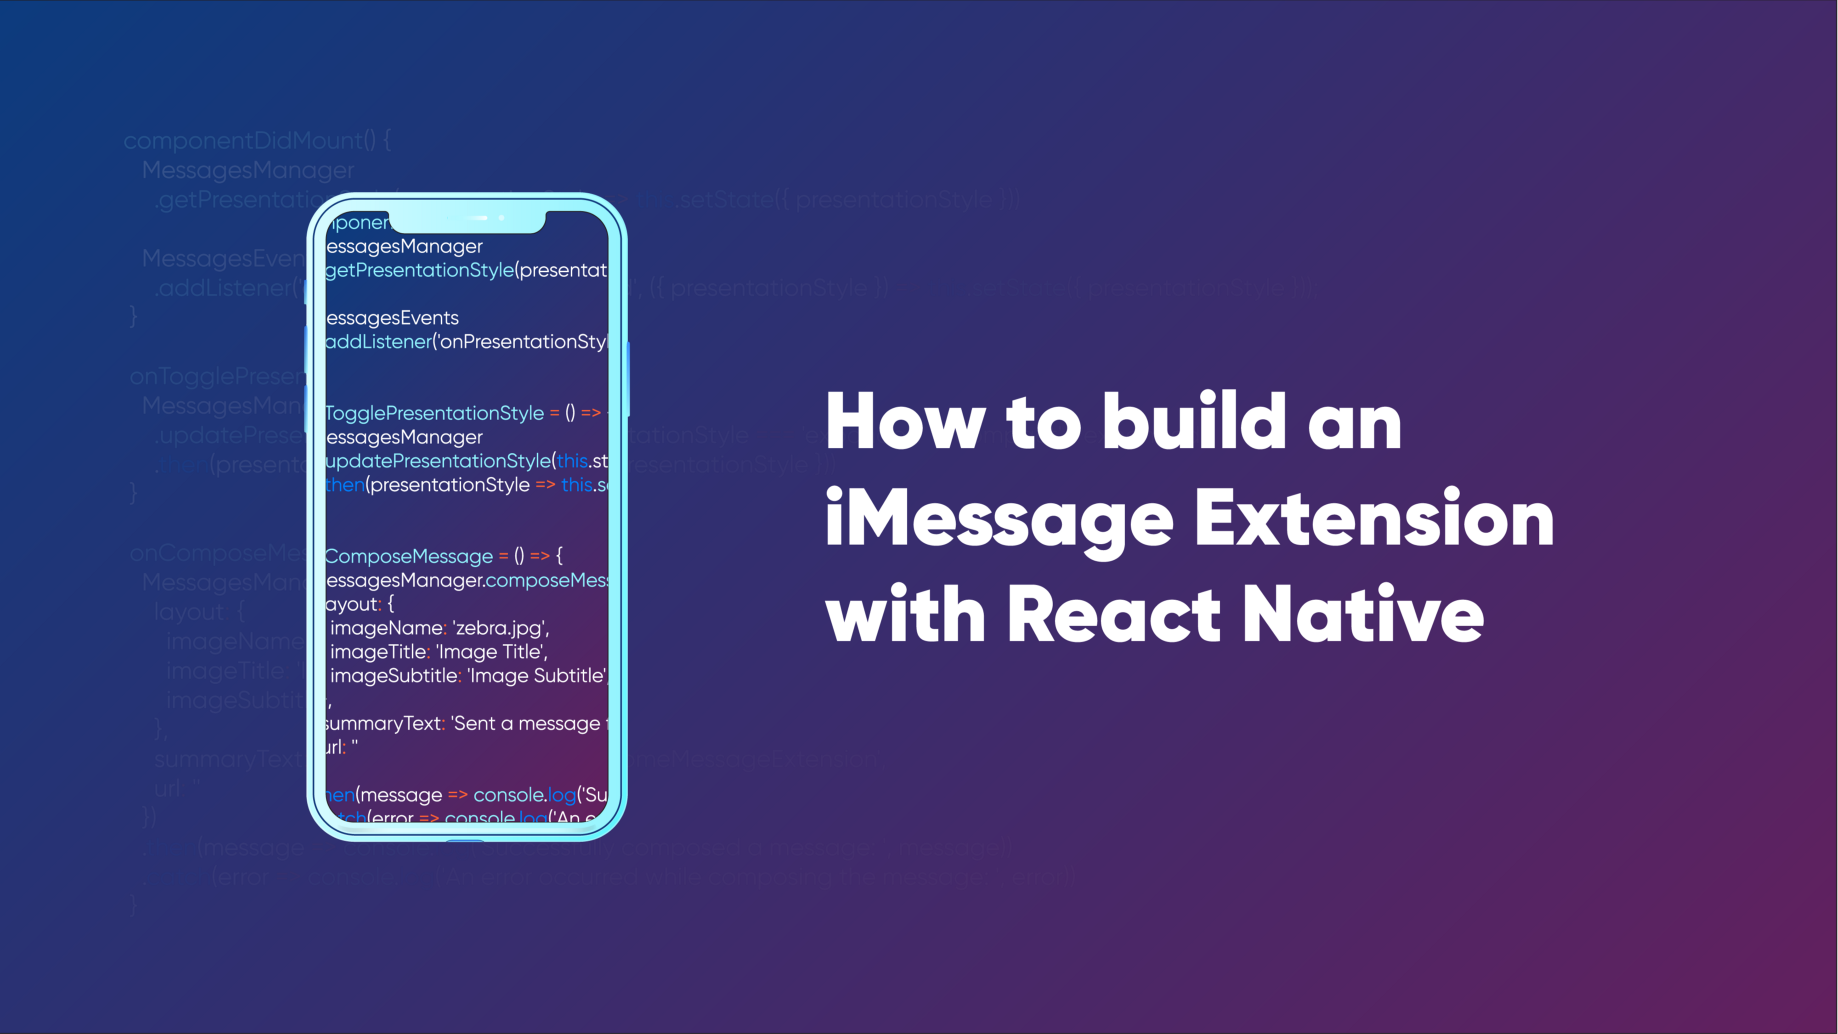 We built an iMessage Extension for our React Native-based mobile app